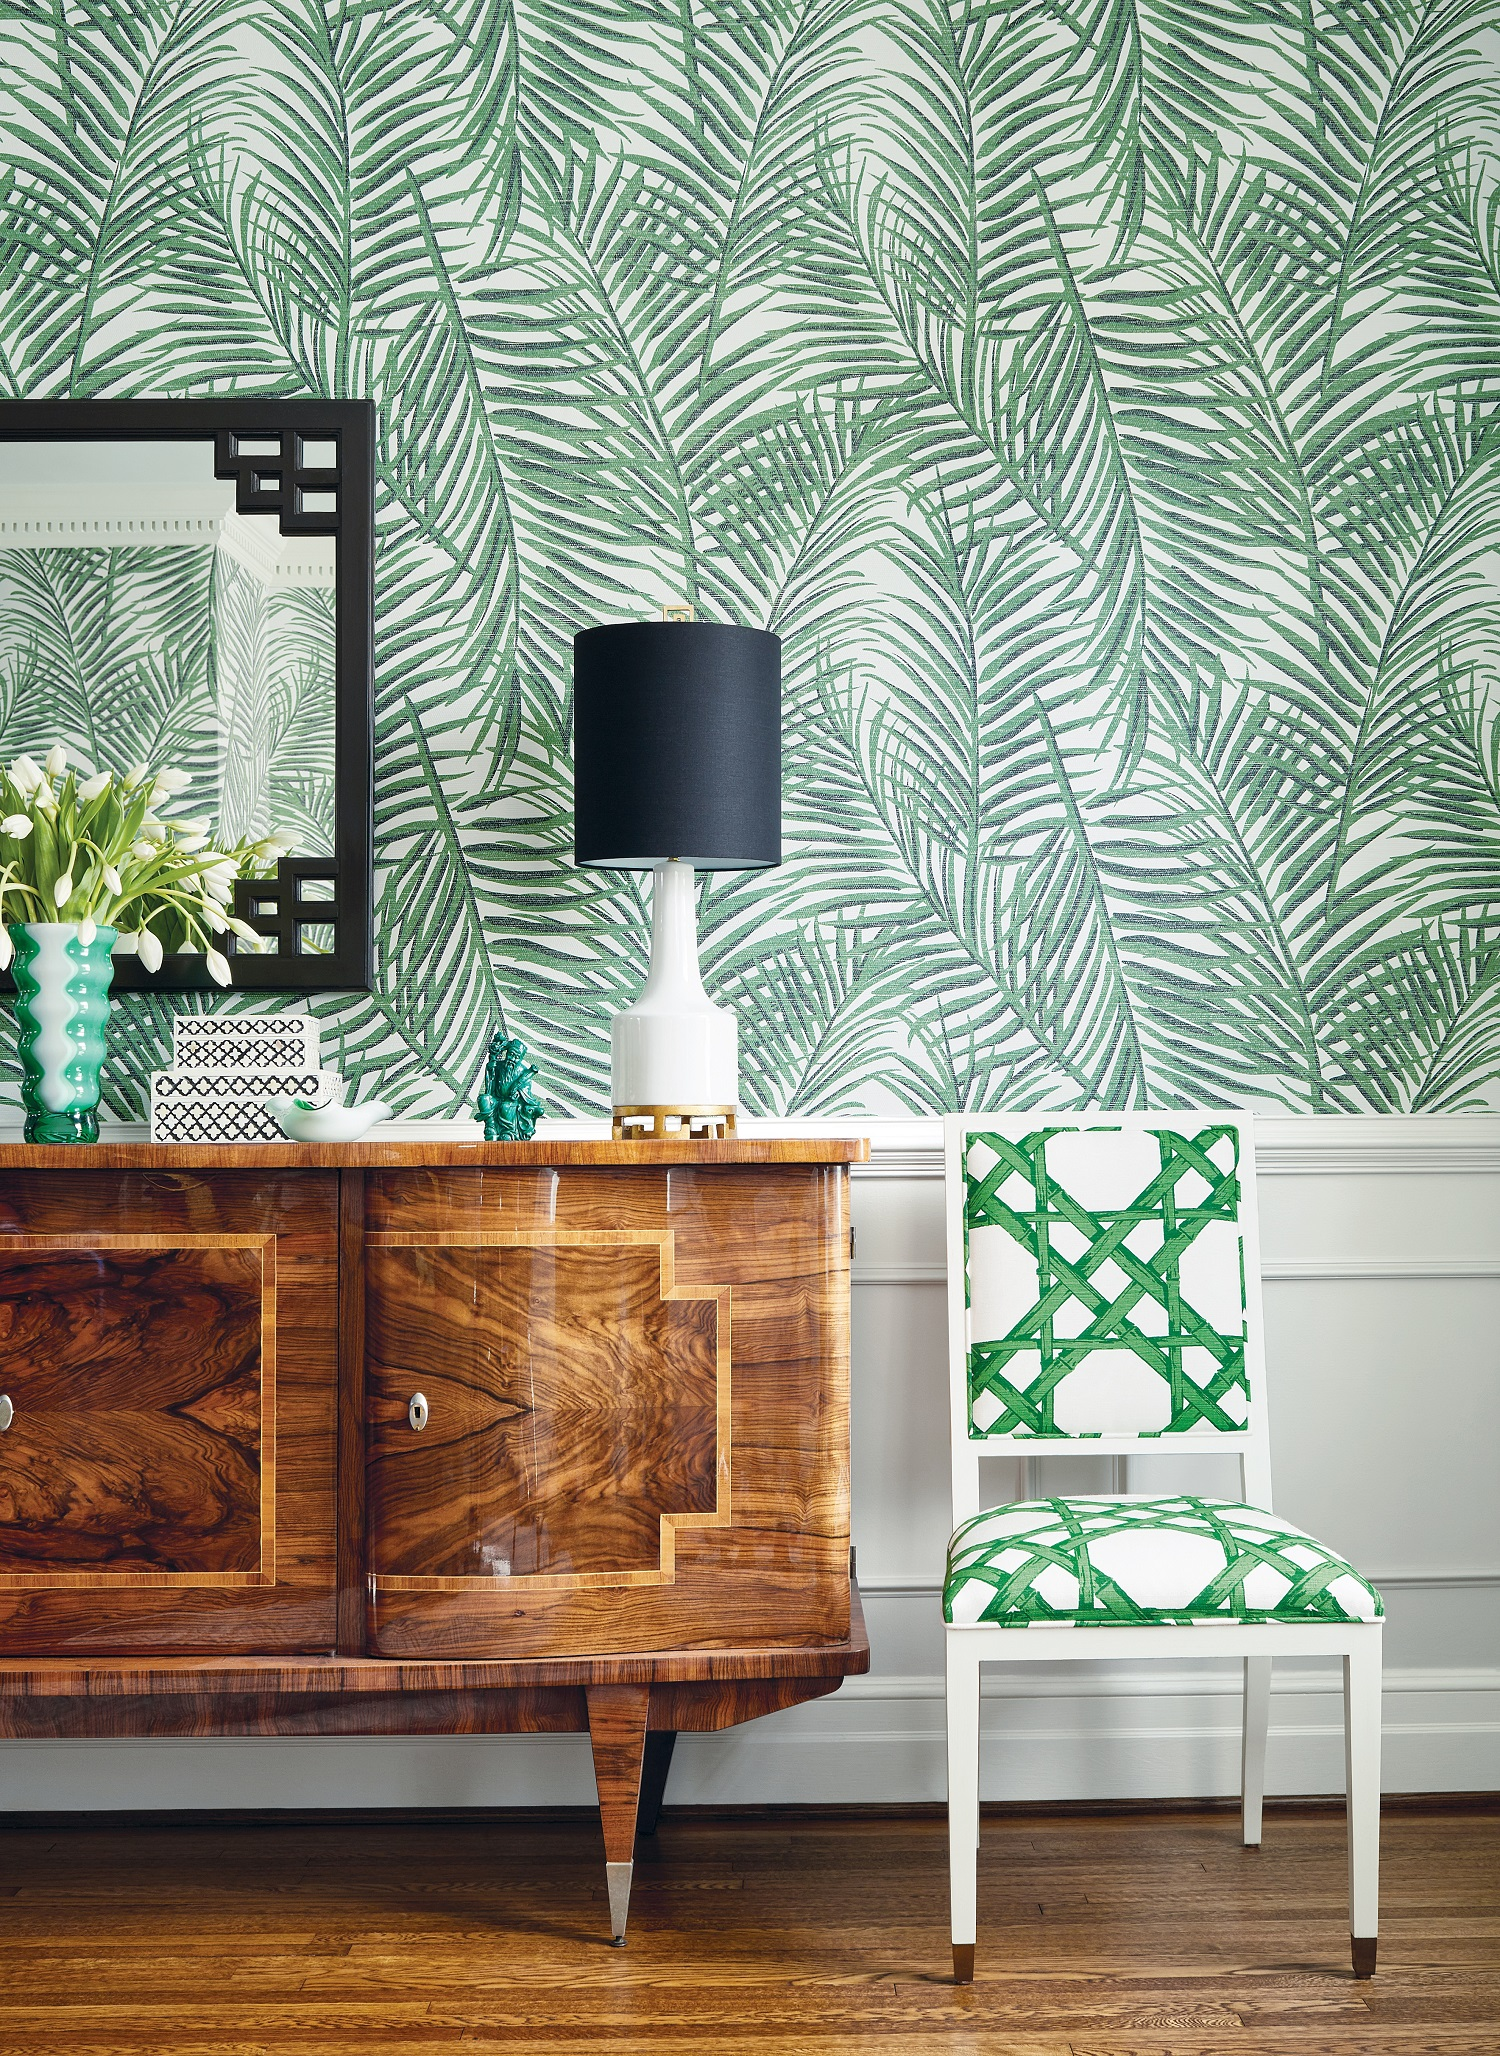 Bring the greenery indoors with  West Palm  grasscloth wallpaper in emerald green paired with Lauderdale chair in emerald green  cyrus cane  fabric.  Photo courtesy of Thibaut Design.